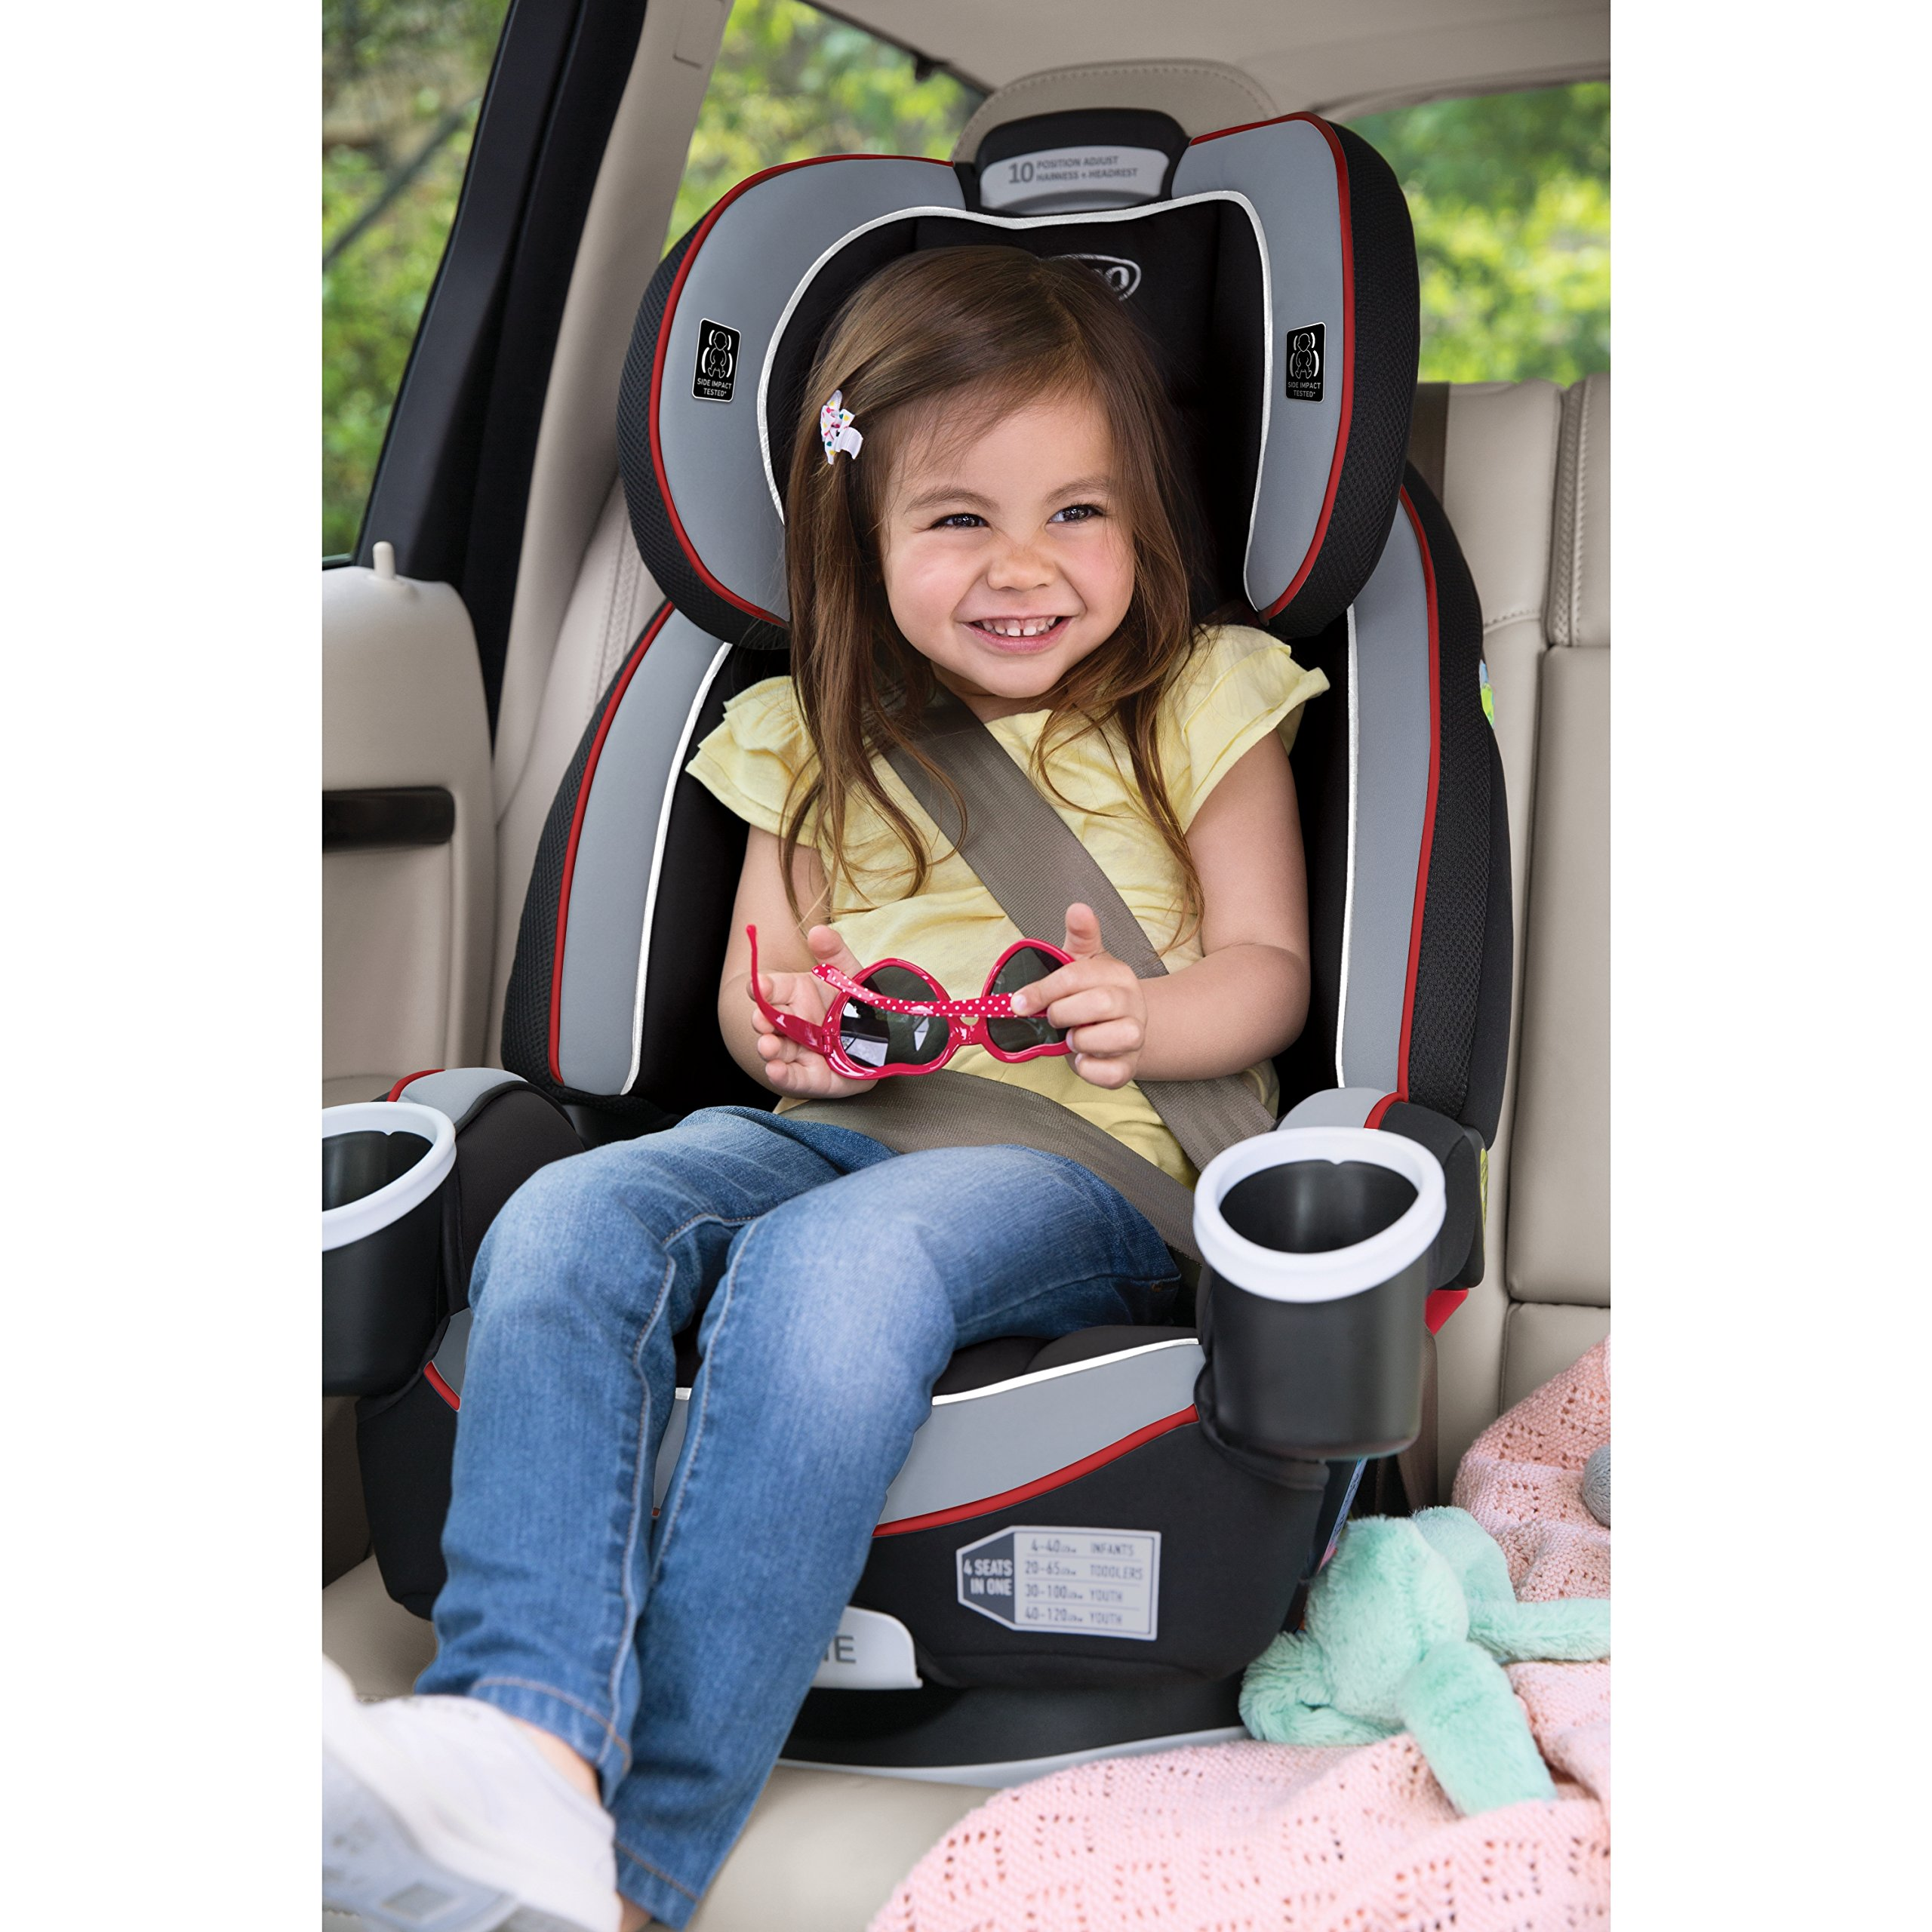 galleon graco 4ever all in one convertible car seat cougar. Black Bedroom Furniture Sets. Home Design Ideas